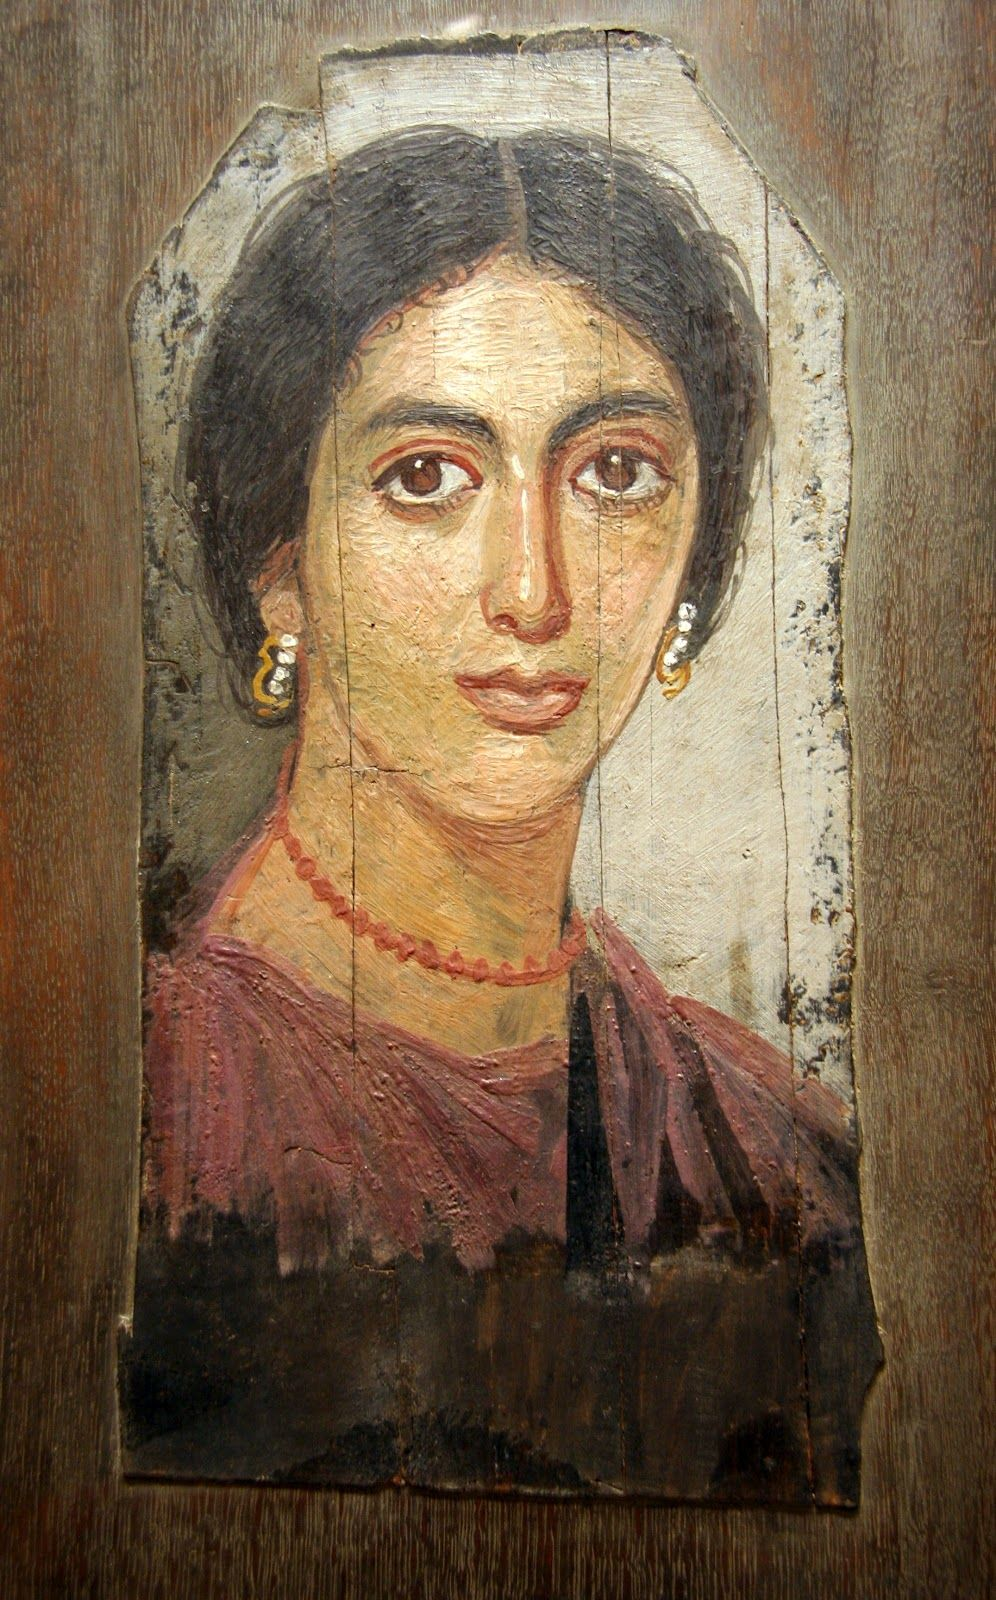 Pittura Romana Fayum Encaustic Portrait Of A Roman Woman Fayum Encaustic Painting